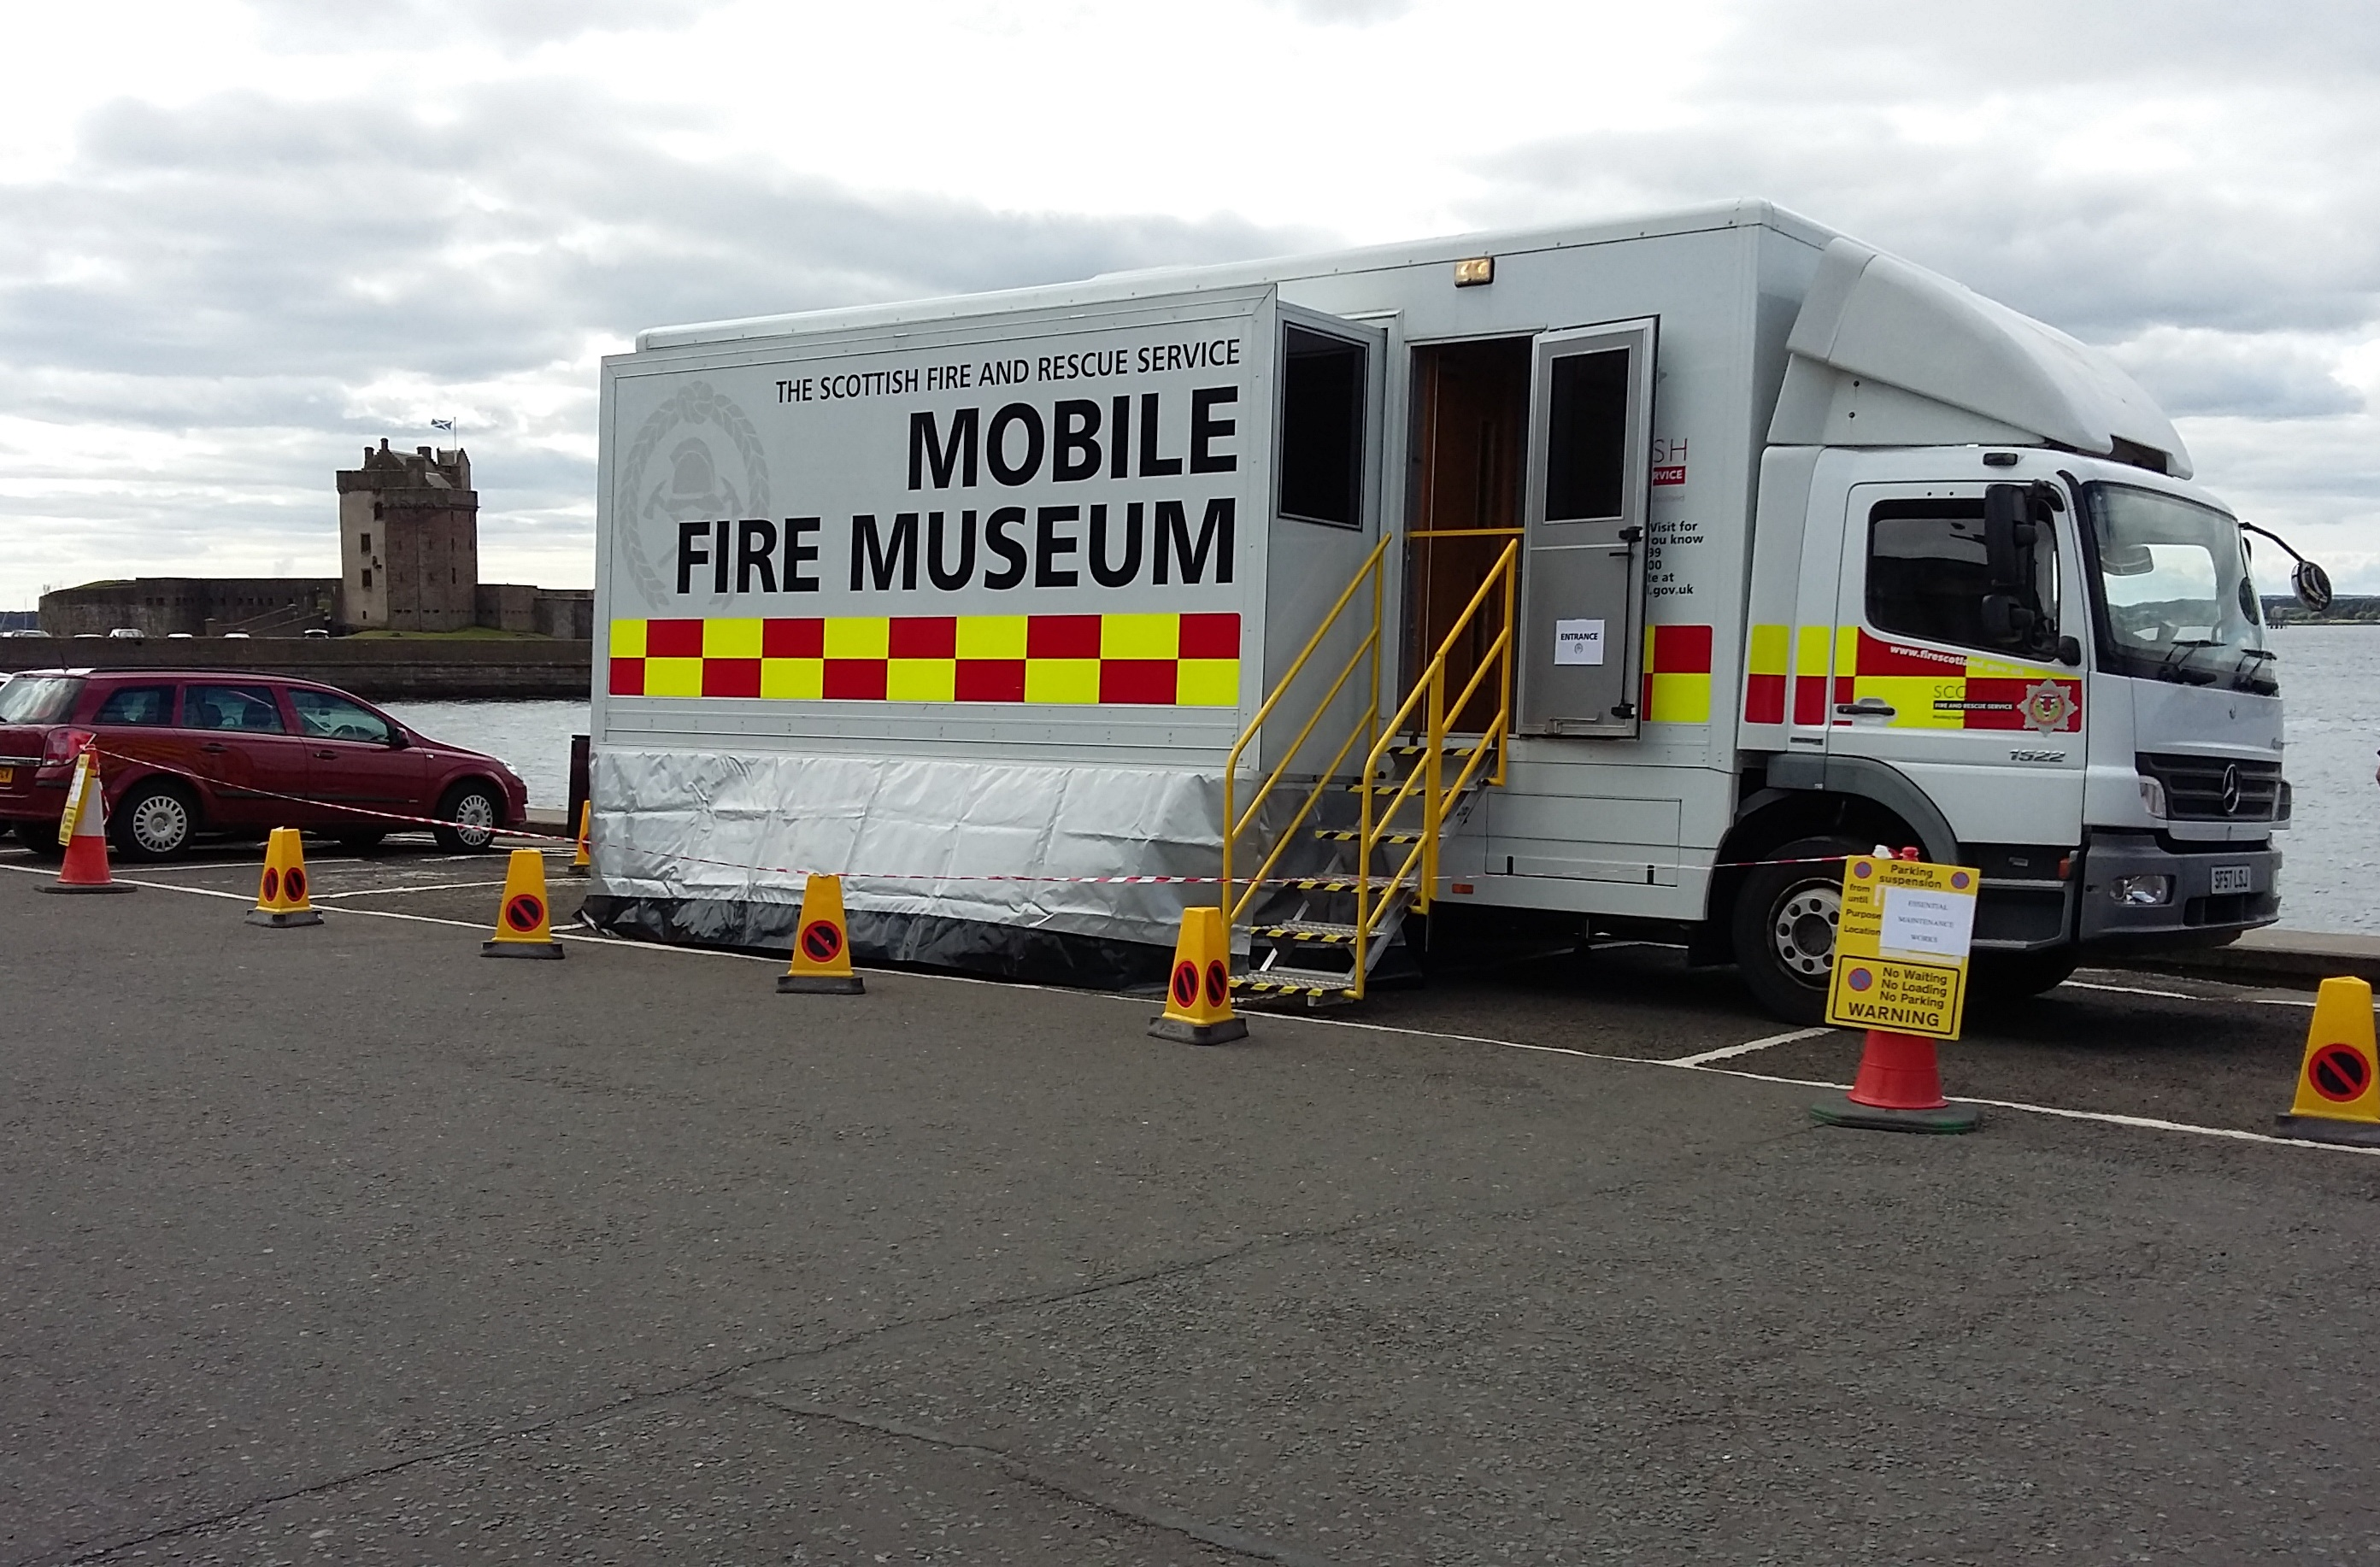 SFRS mobile museum popular attraction at Broughty Ferry Gala Day